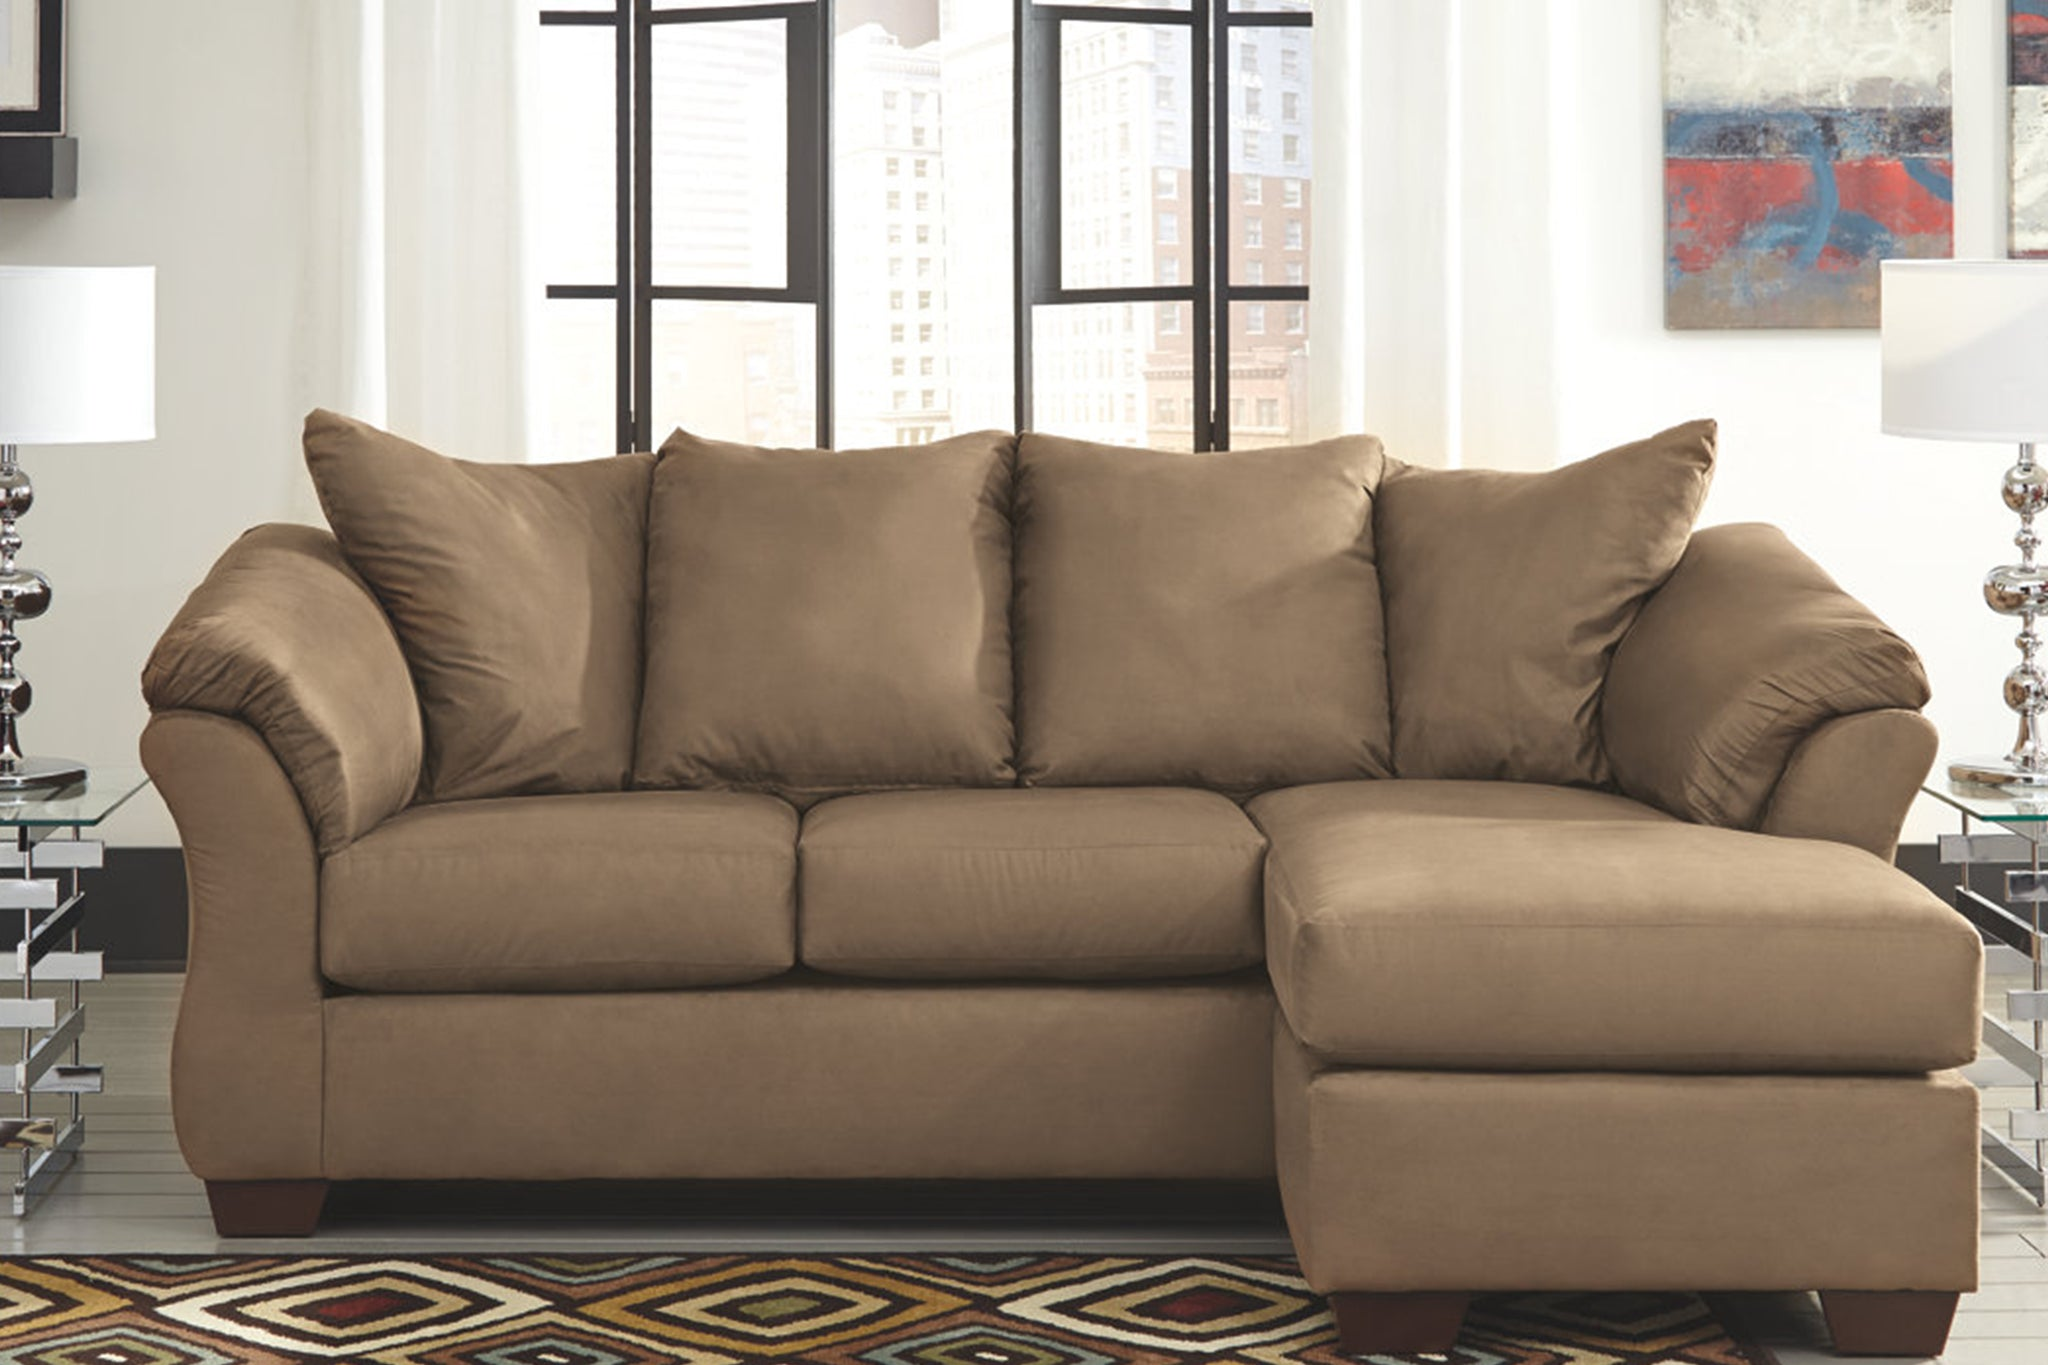 Sofa And Loveseats Sets Page 3 La Sierra Furniture